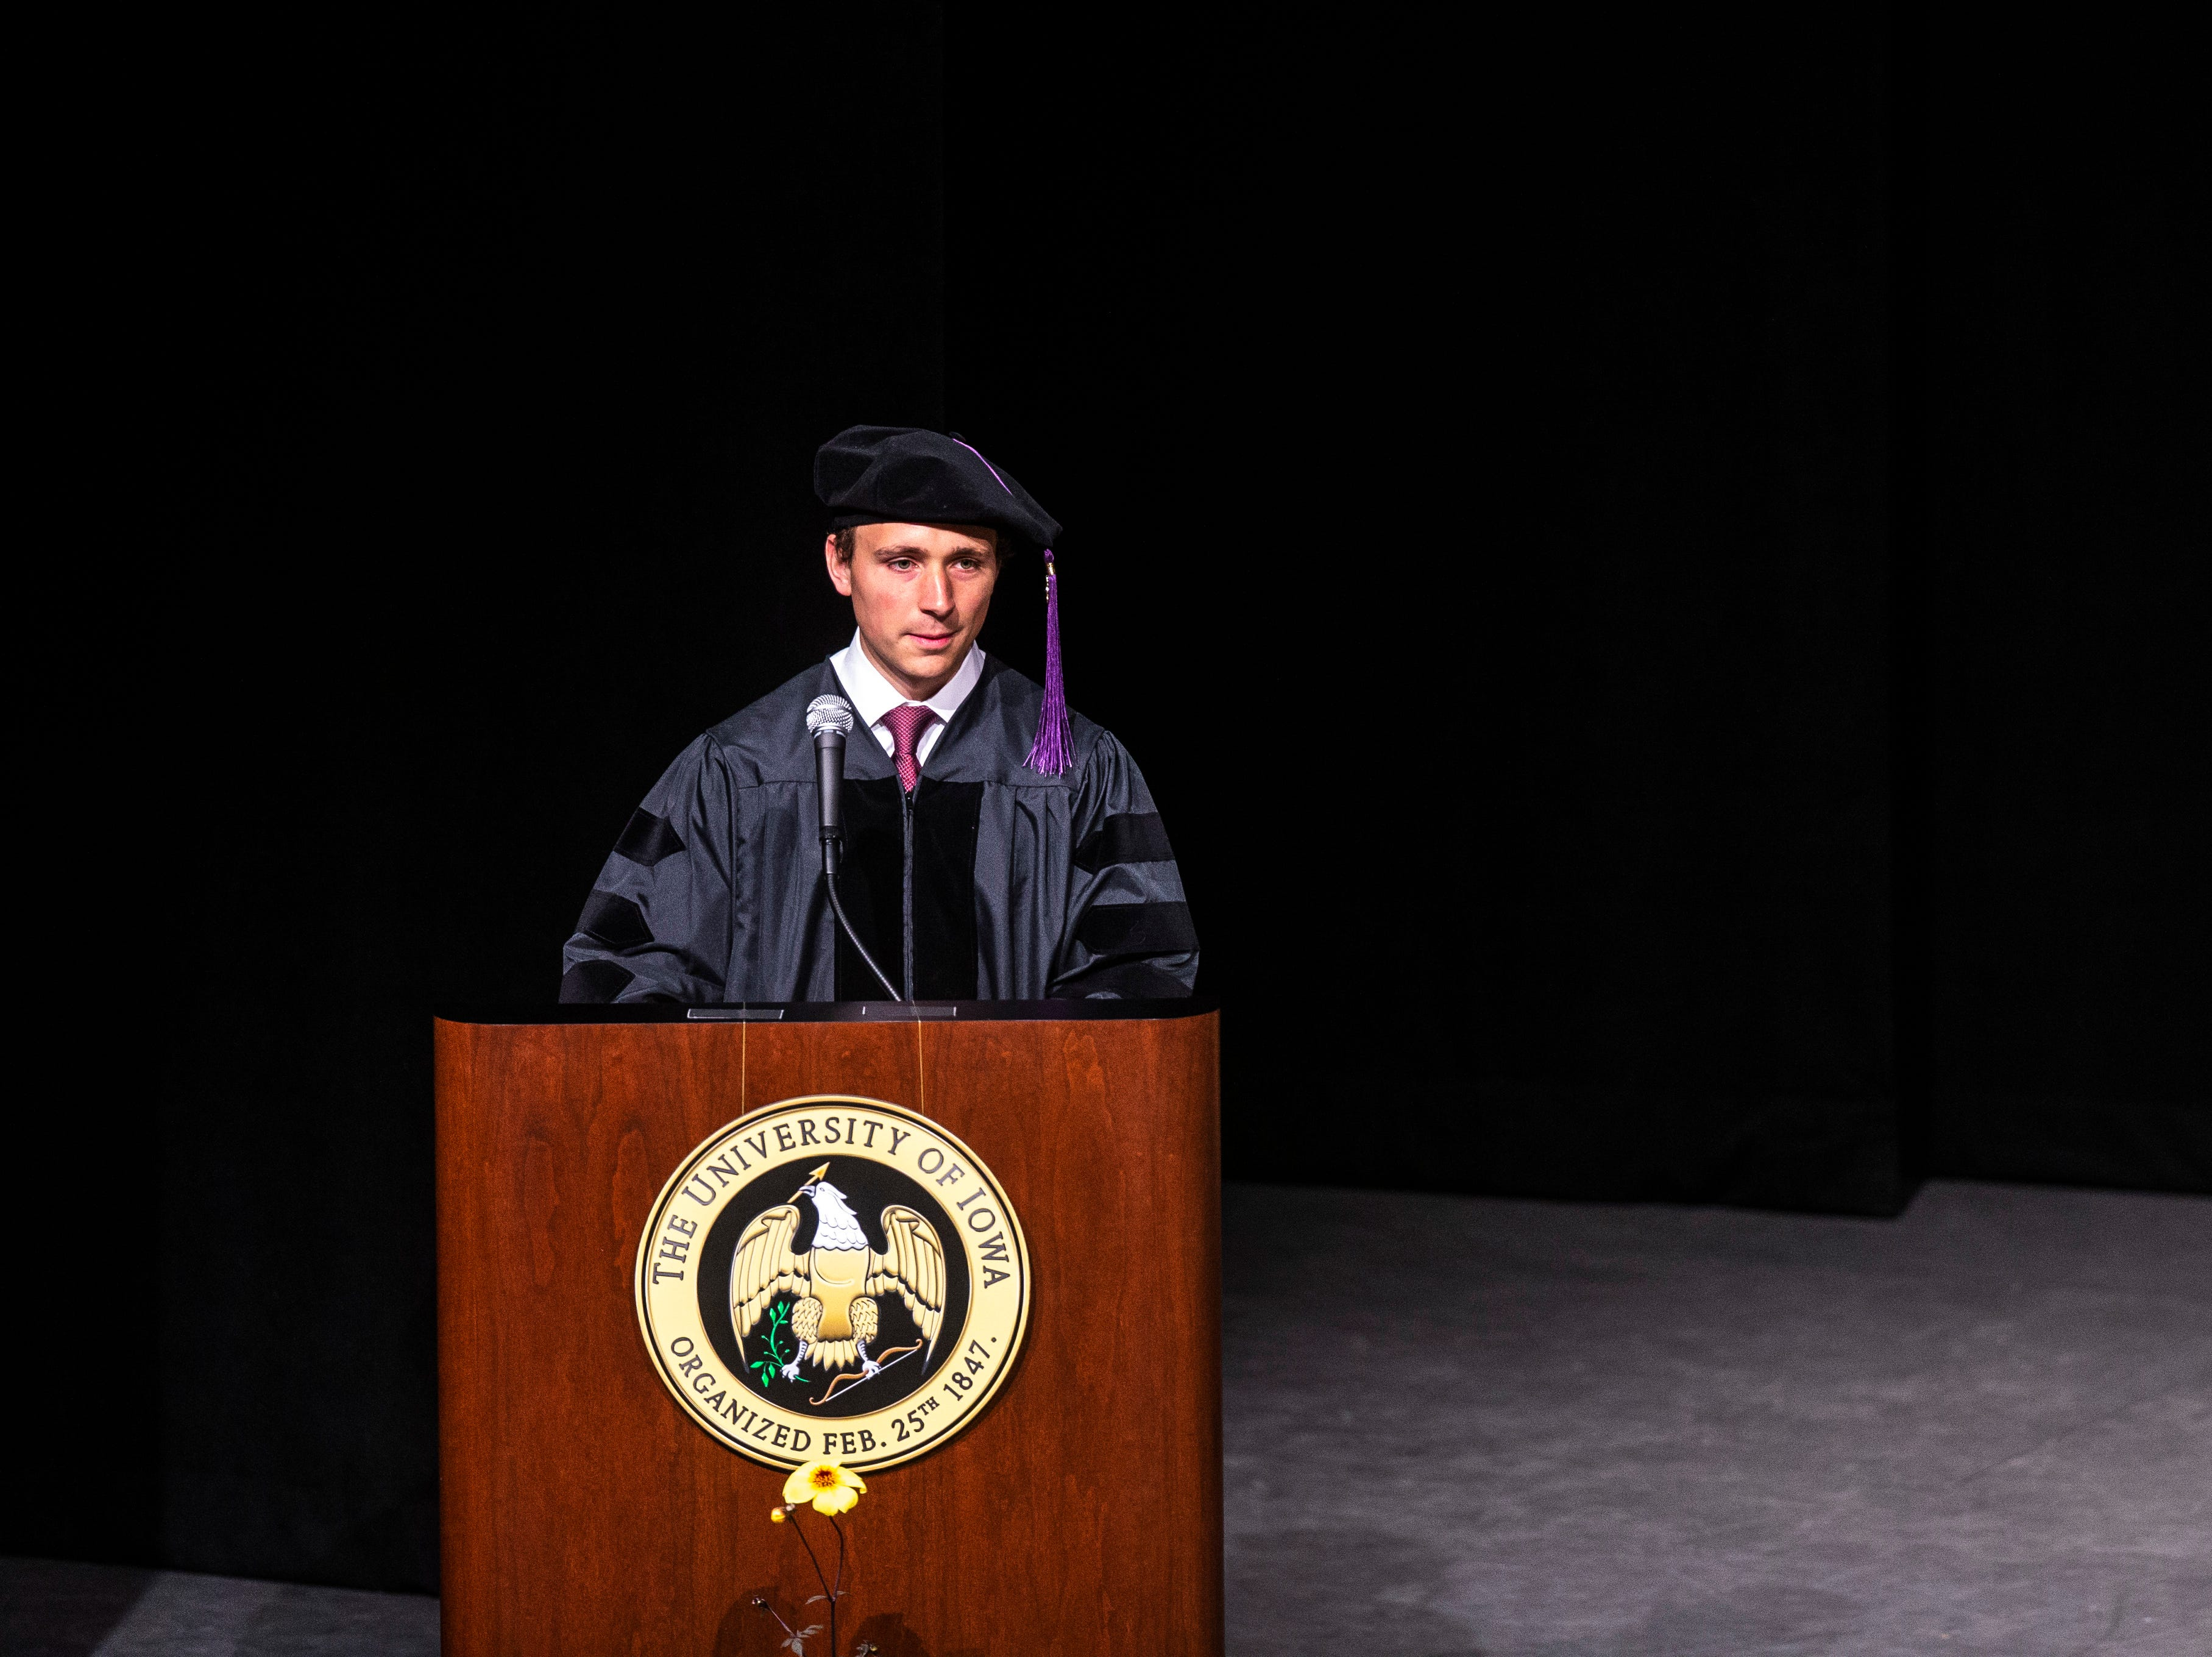 Alexander Parrott, of Des Moines delivers the student address during the College of Law commencement ceremony, Friday, May 10, 2019, at Hancher Auditorium on the University of Iowa campus in Iowa City, Iowa.